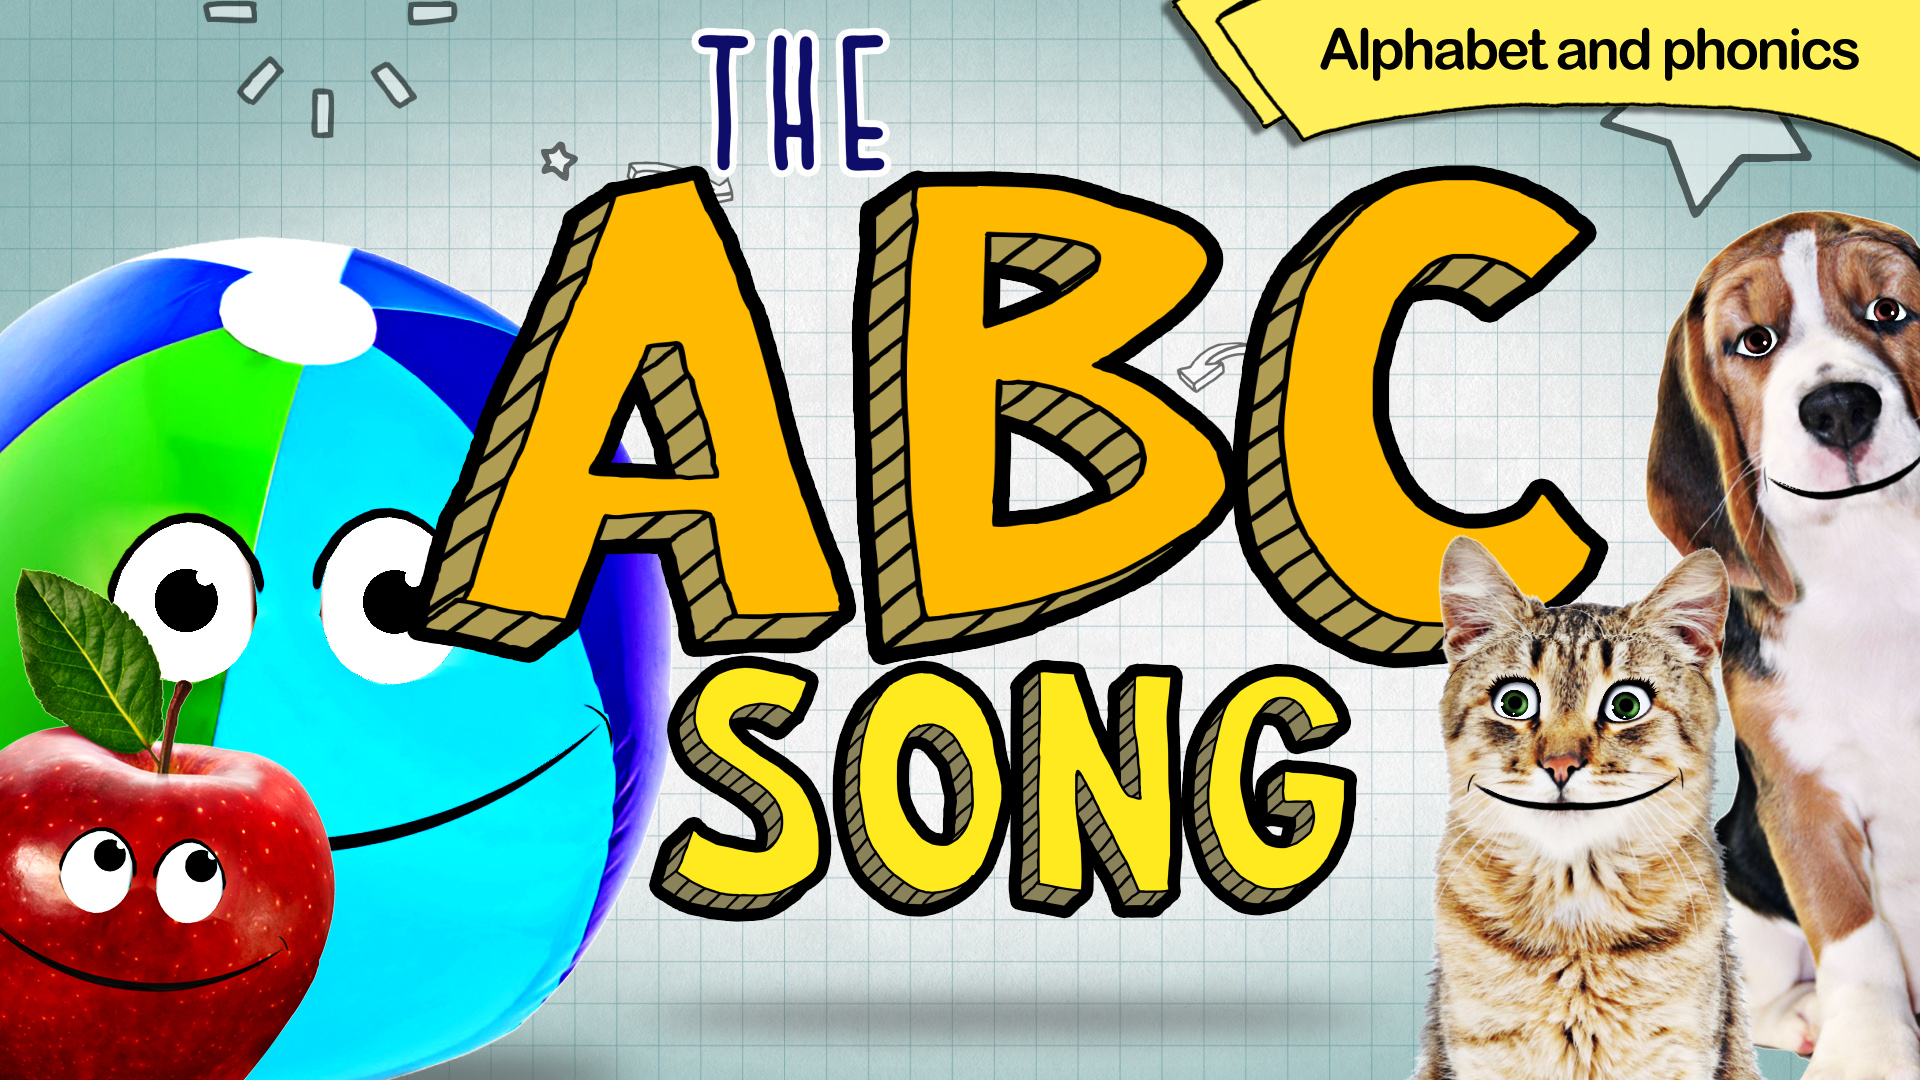 The ABC Song, Alphabet and Phonics